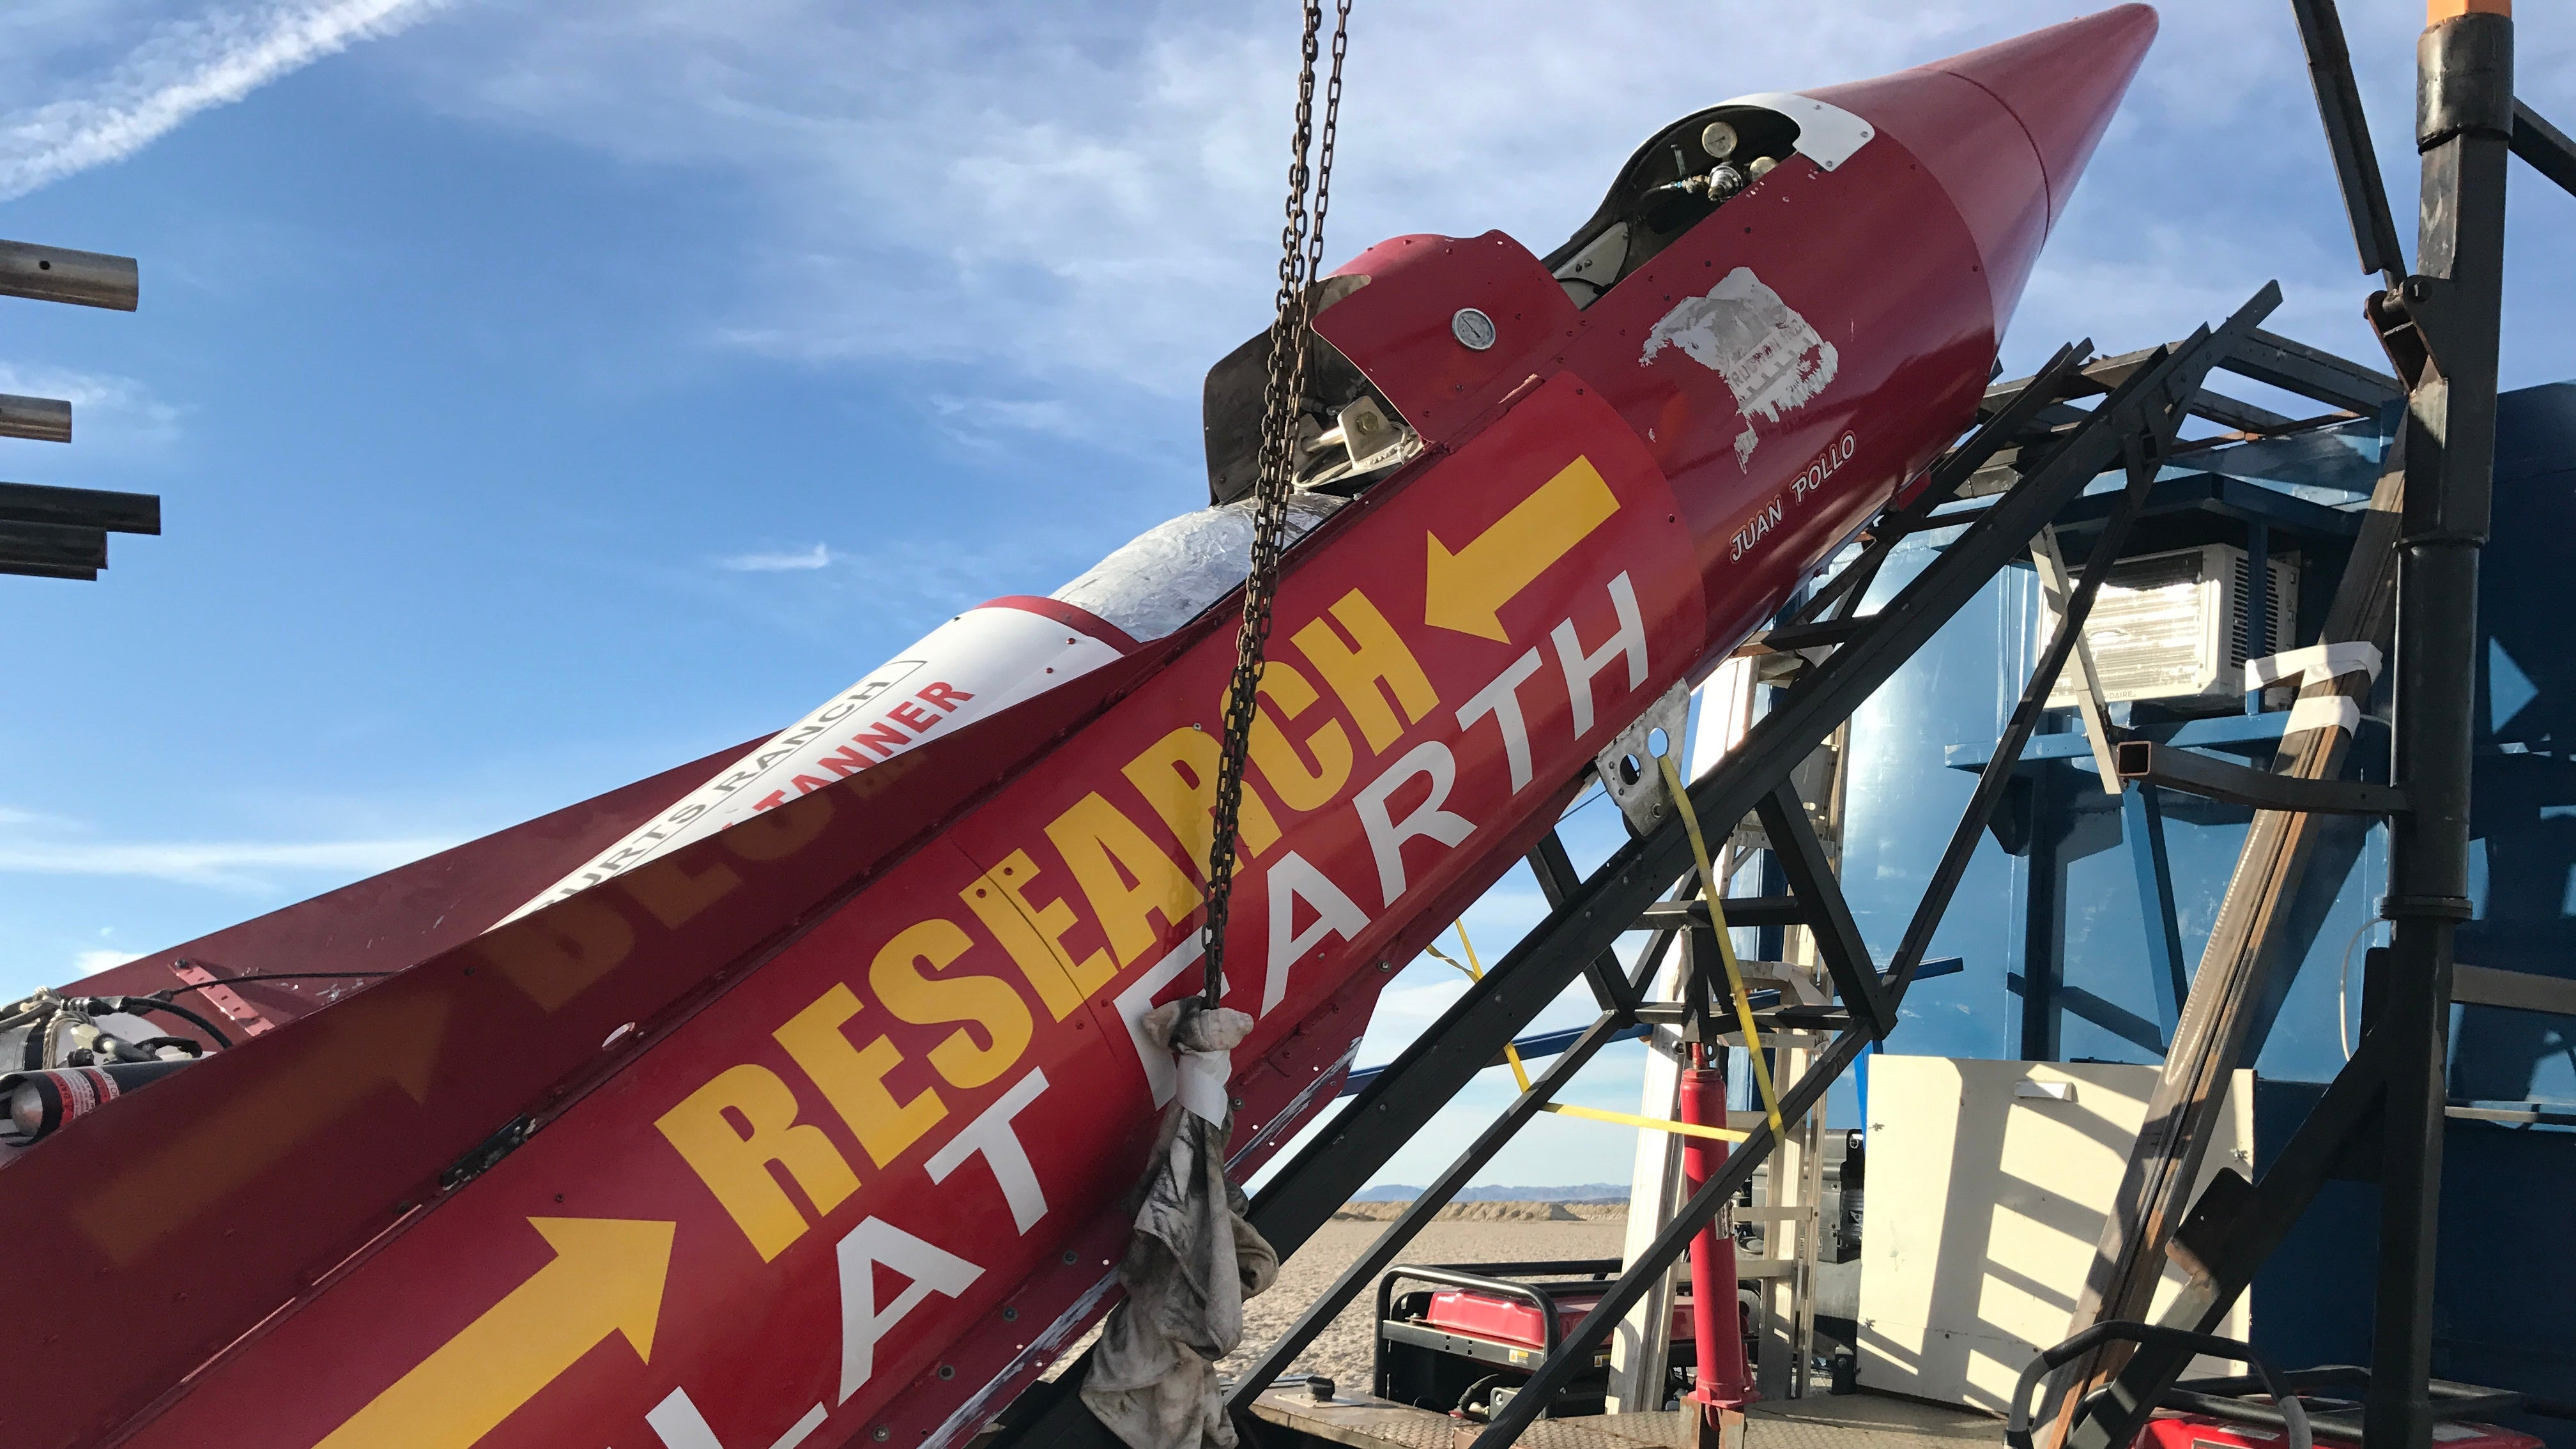 Flat Earth Rocketeer Once Again Fails To Launch Himself Into The Sky At 500 MPH